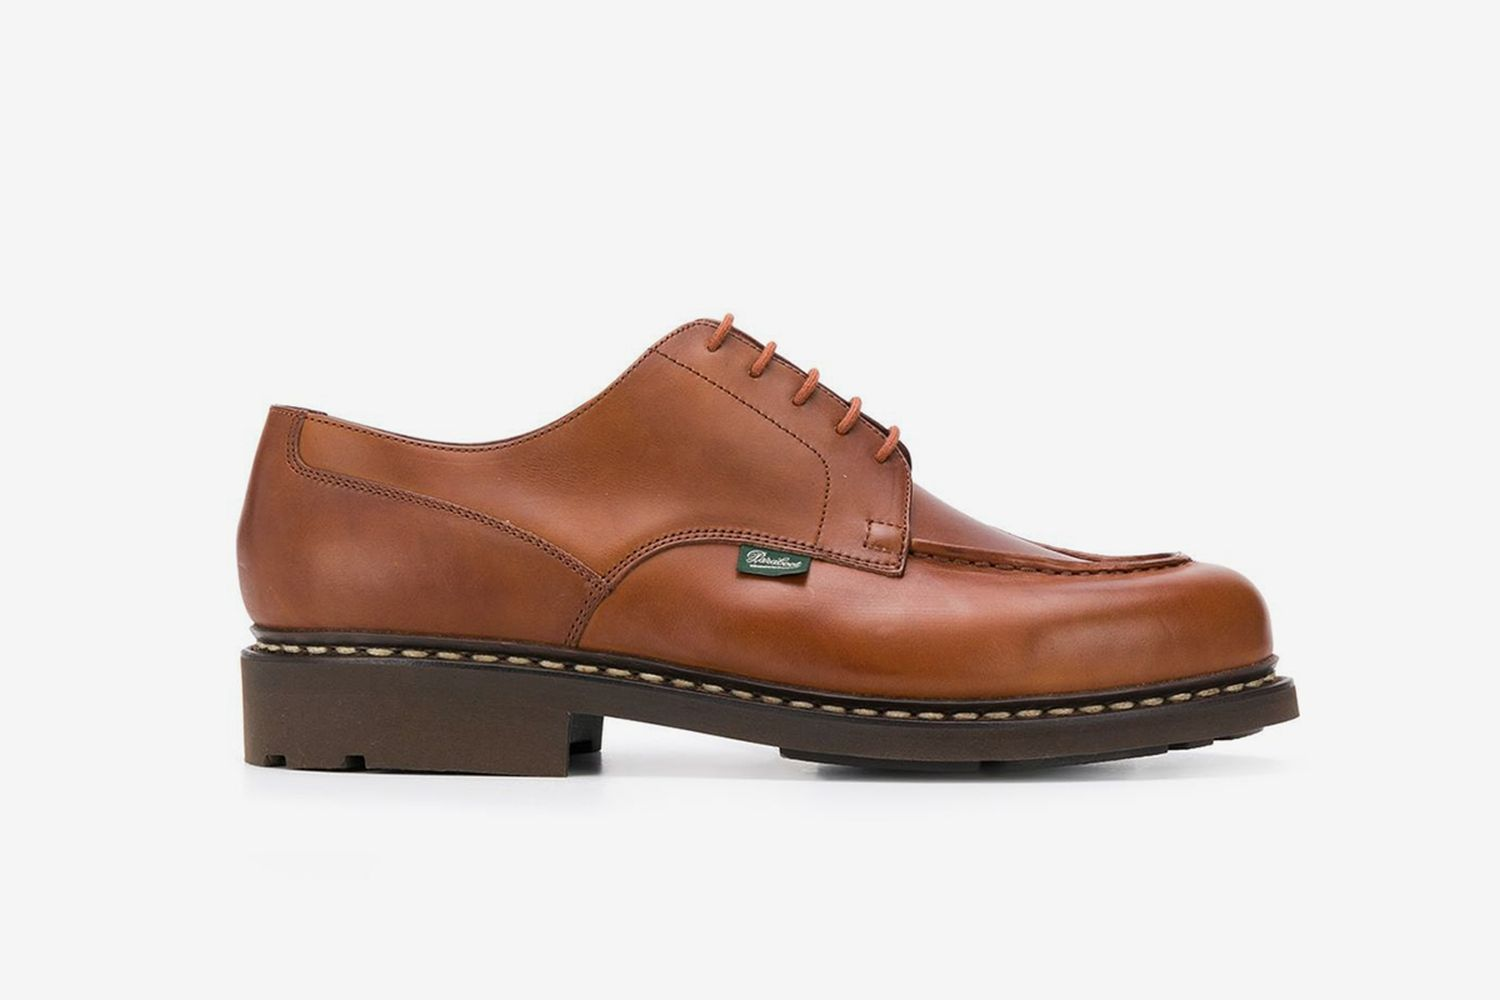 Exposed-Stitched Leather Shoes